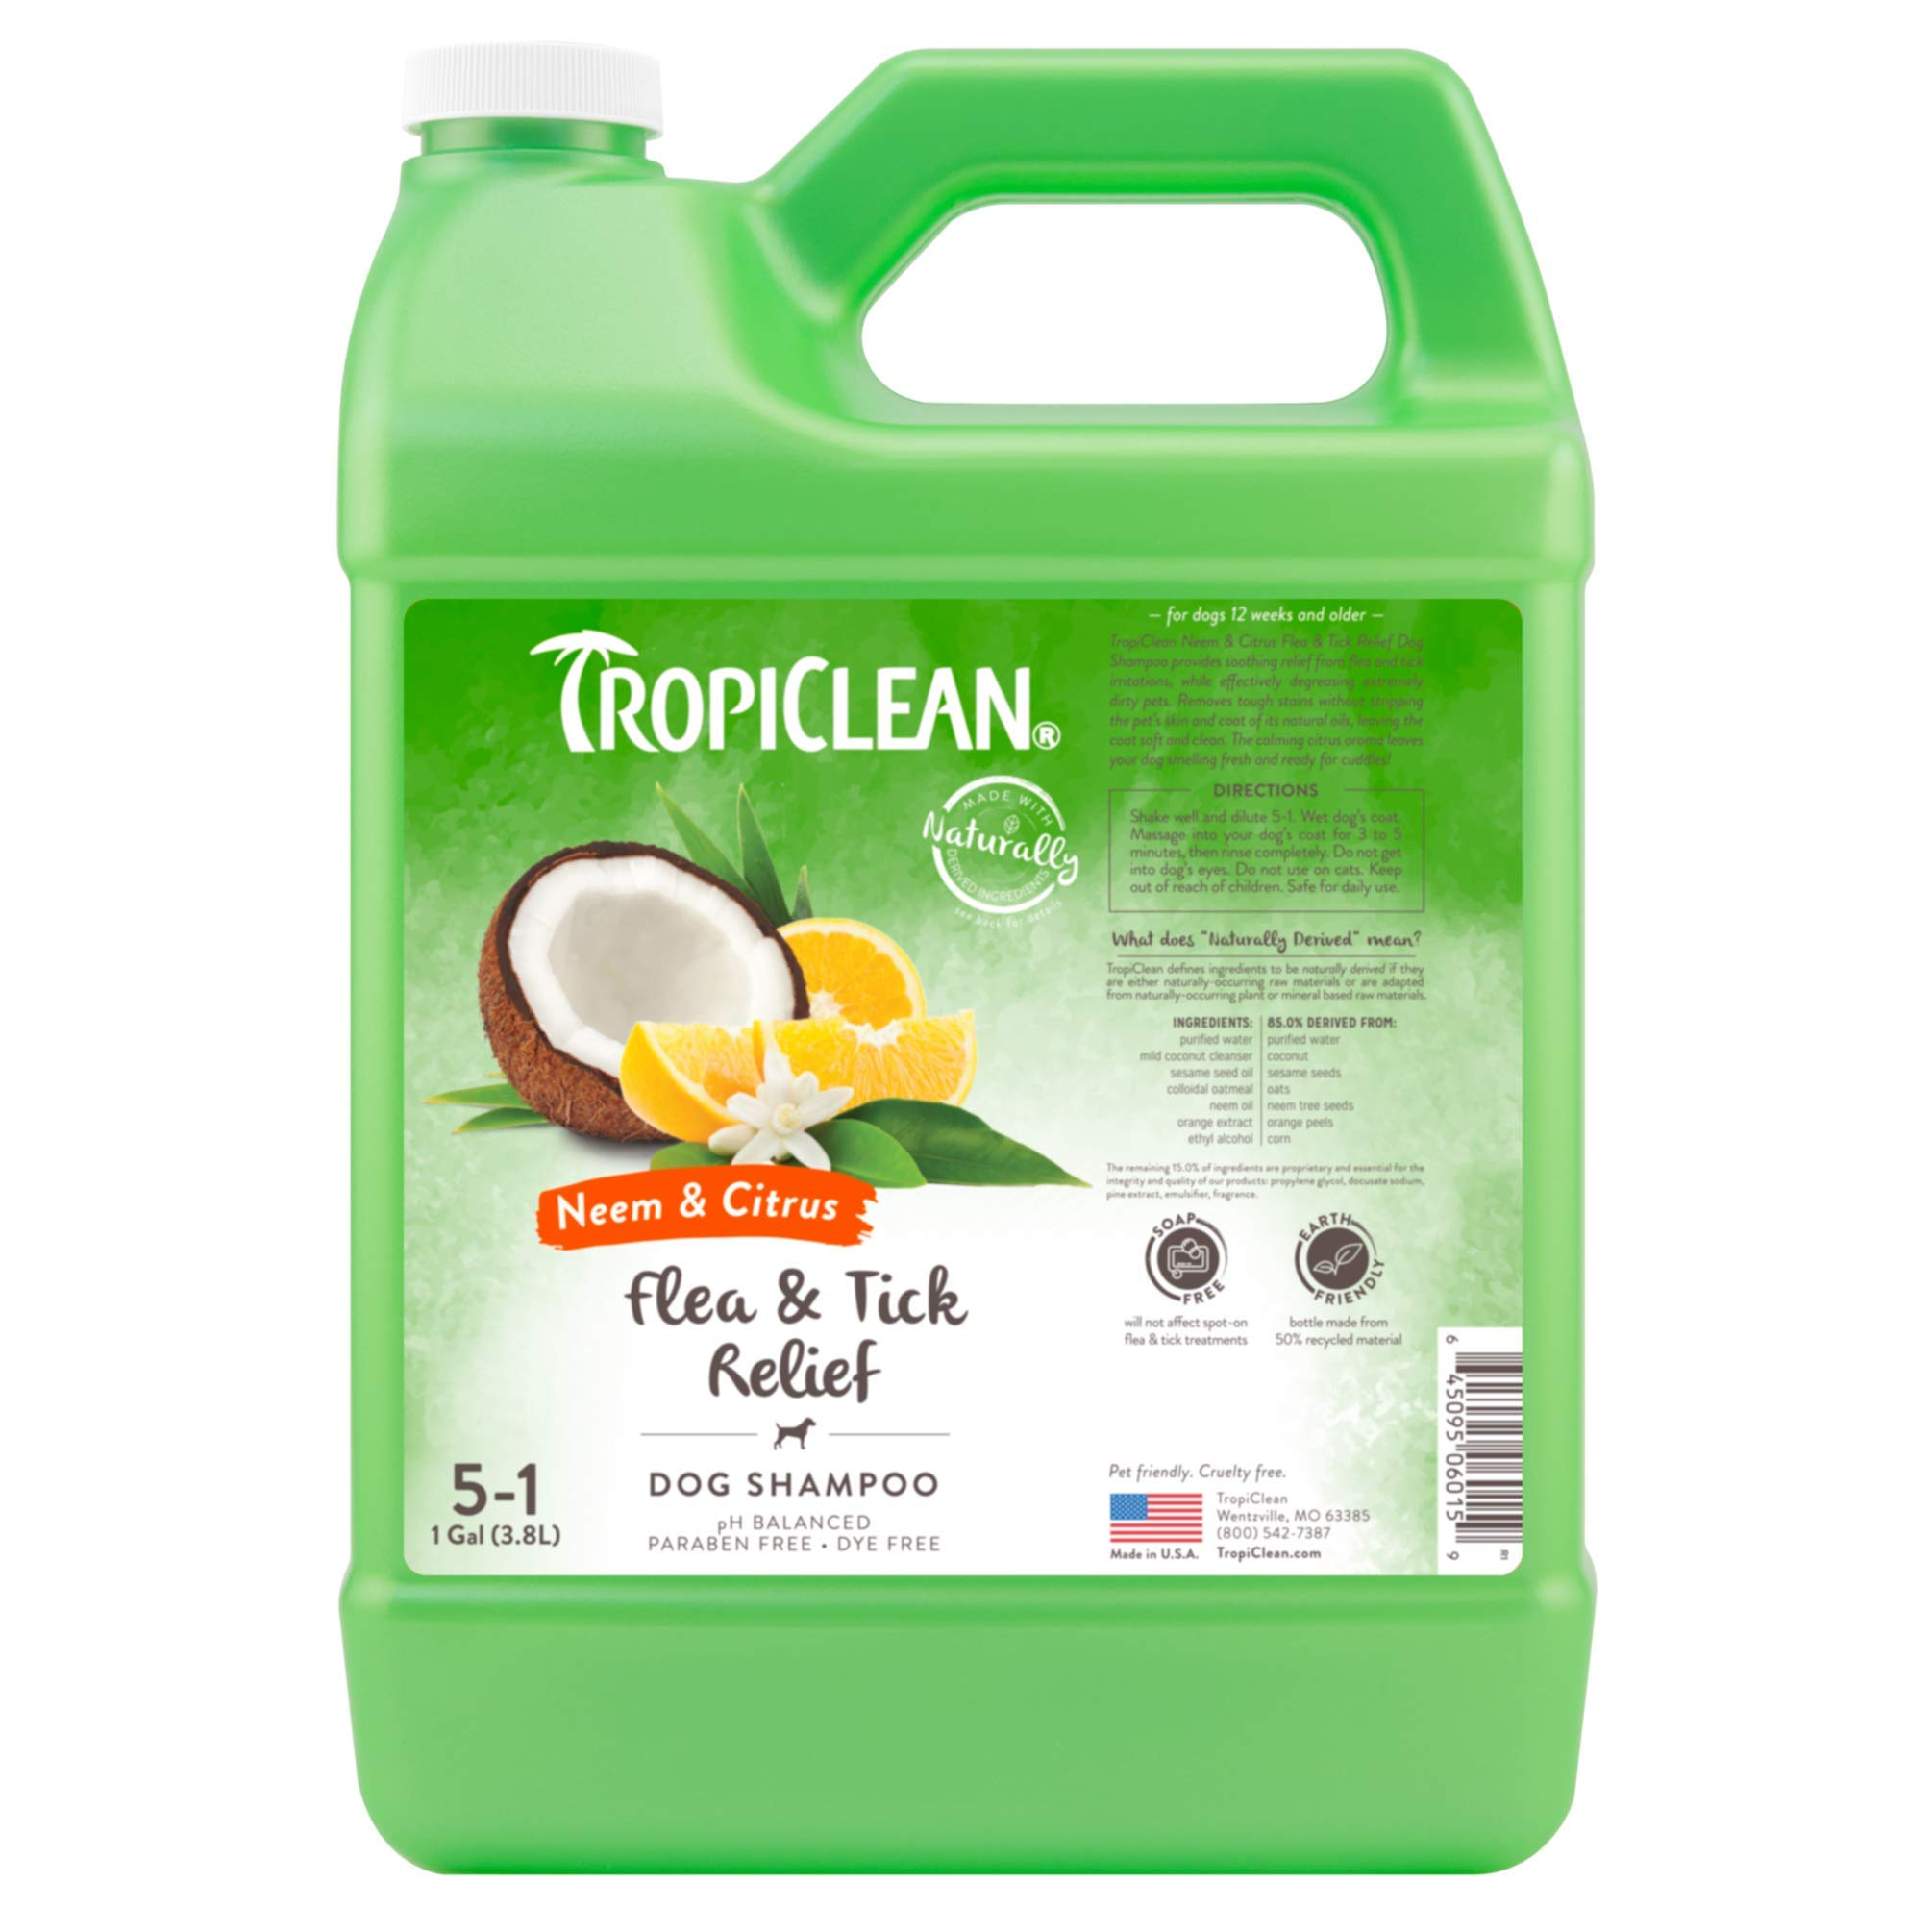 TropiClean Neem & Citrus Flea & Tick Dog Shampoo, 1 Gallon by TropiClean